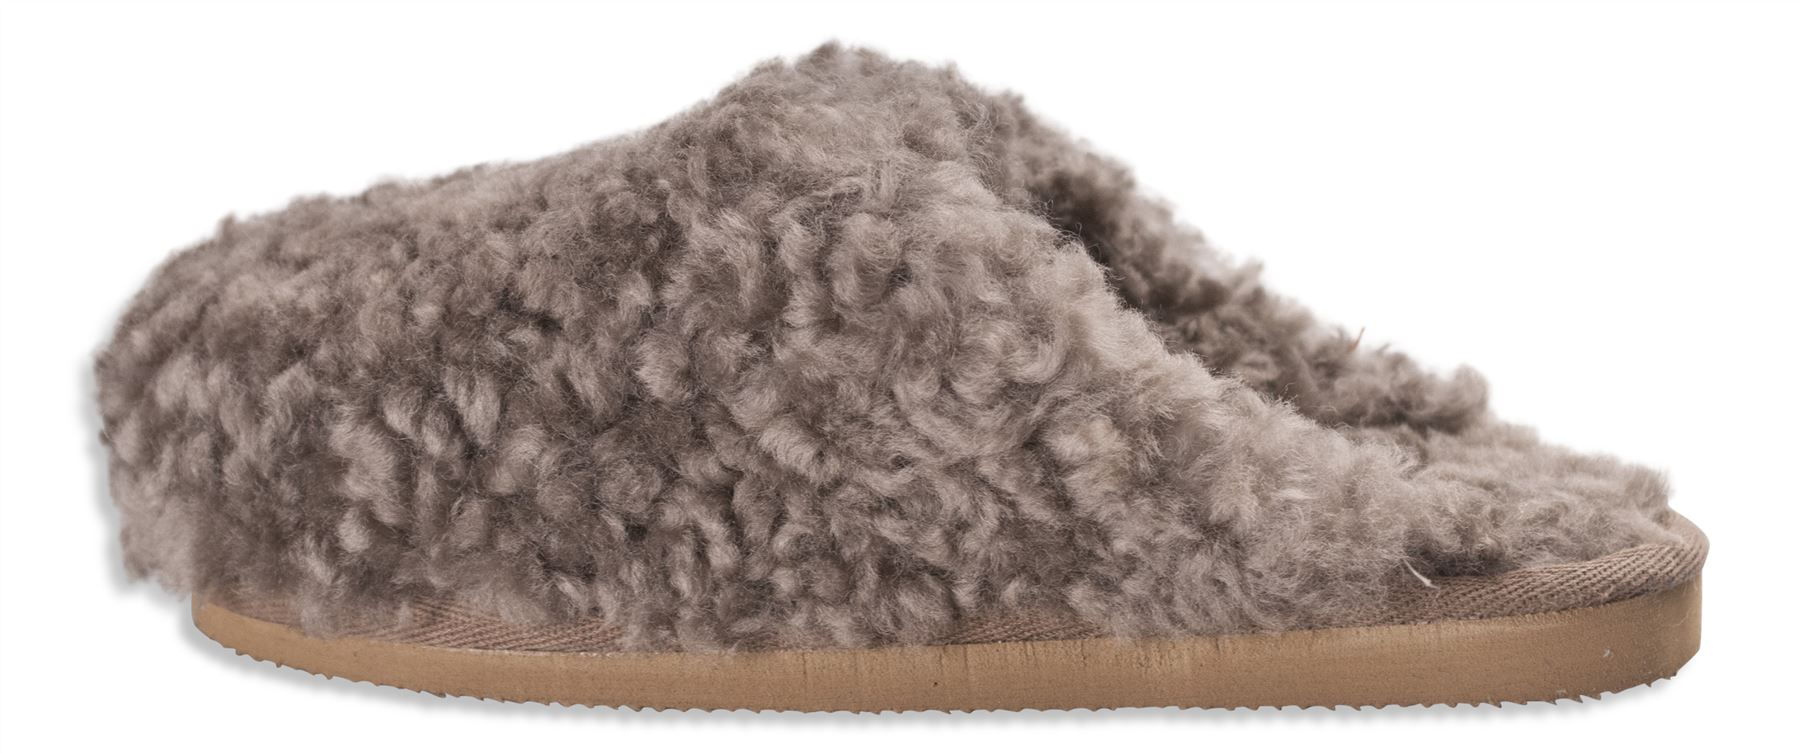 Shepherd donnaReal Sheepskin Slippers Soft Soft Soft Wool Hard Sole Ladies JENNY 1909 77db1d